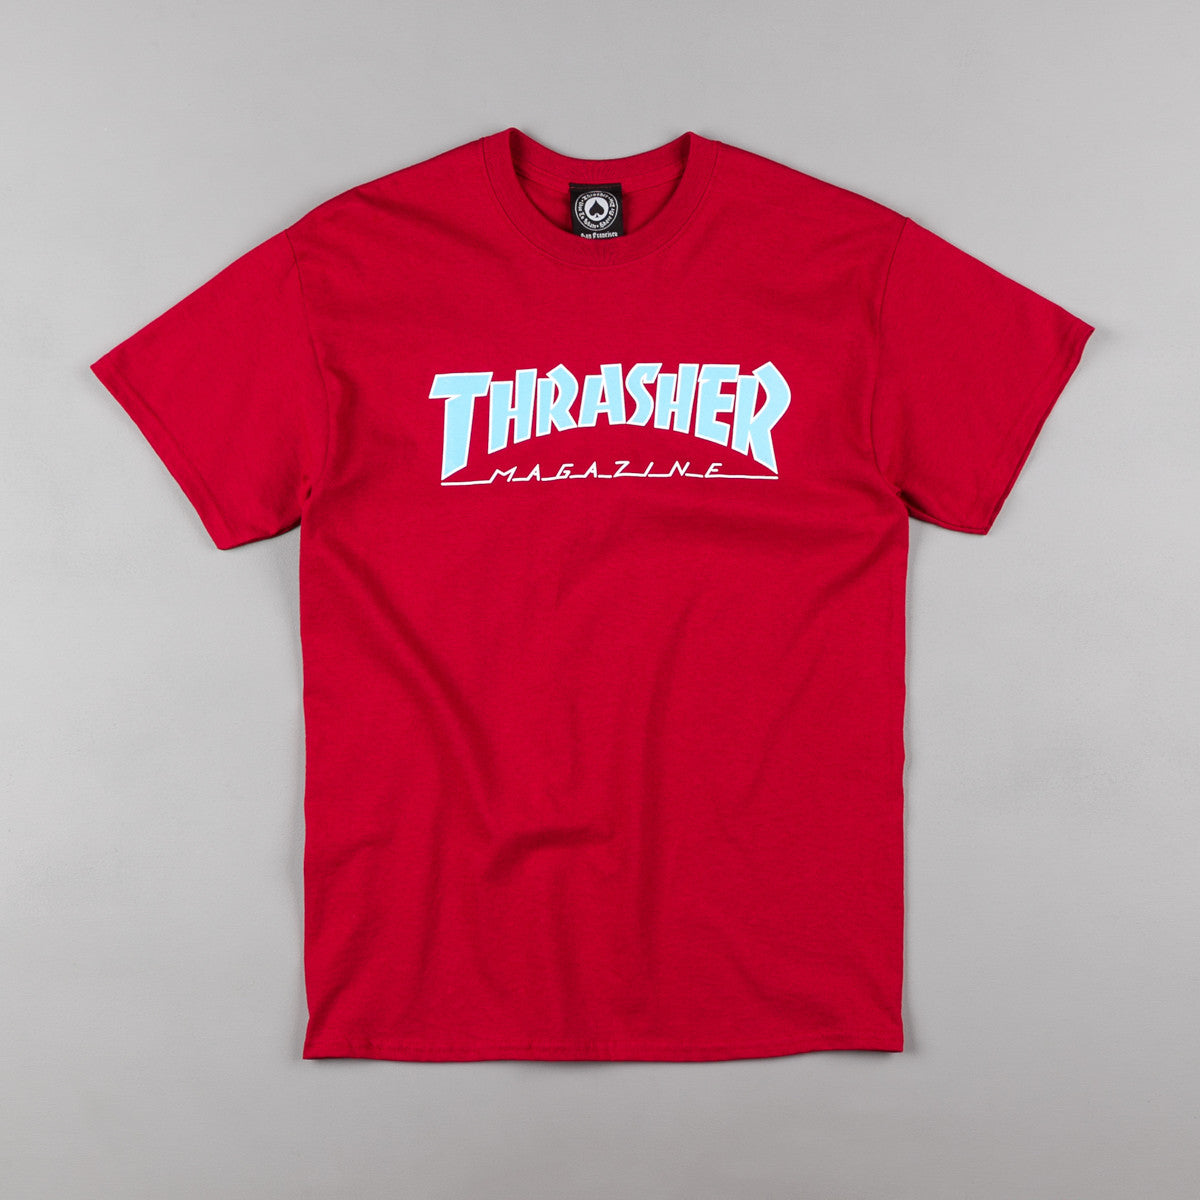 Thrasher Outlined T-Shirt - Cardinal Red